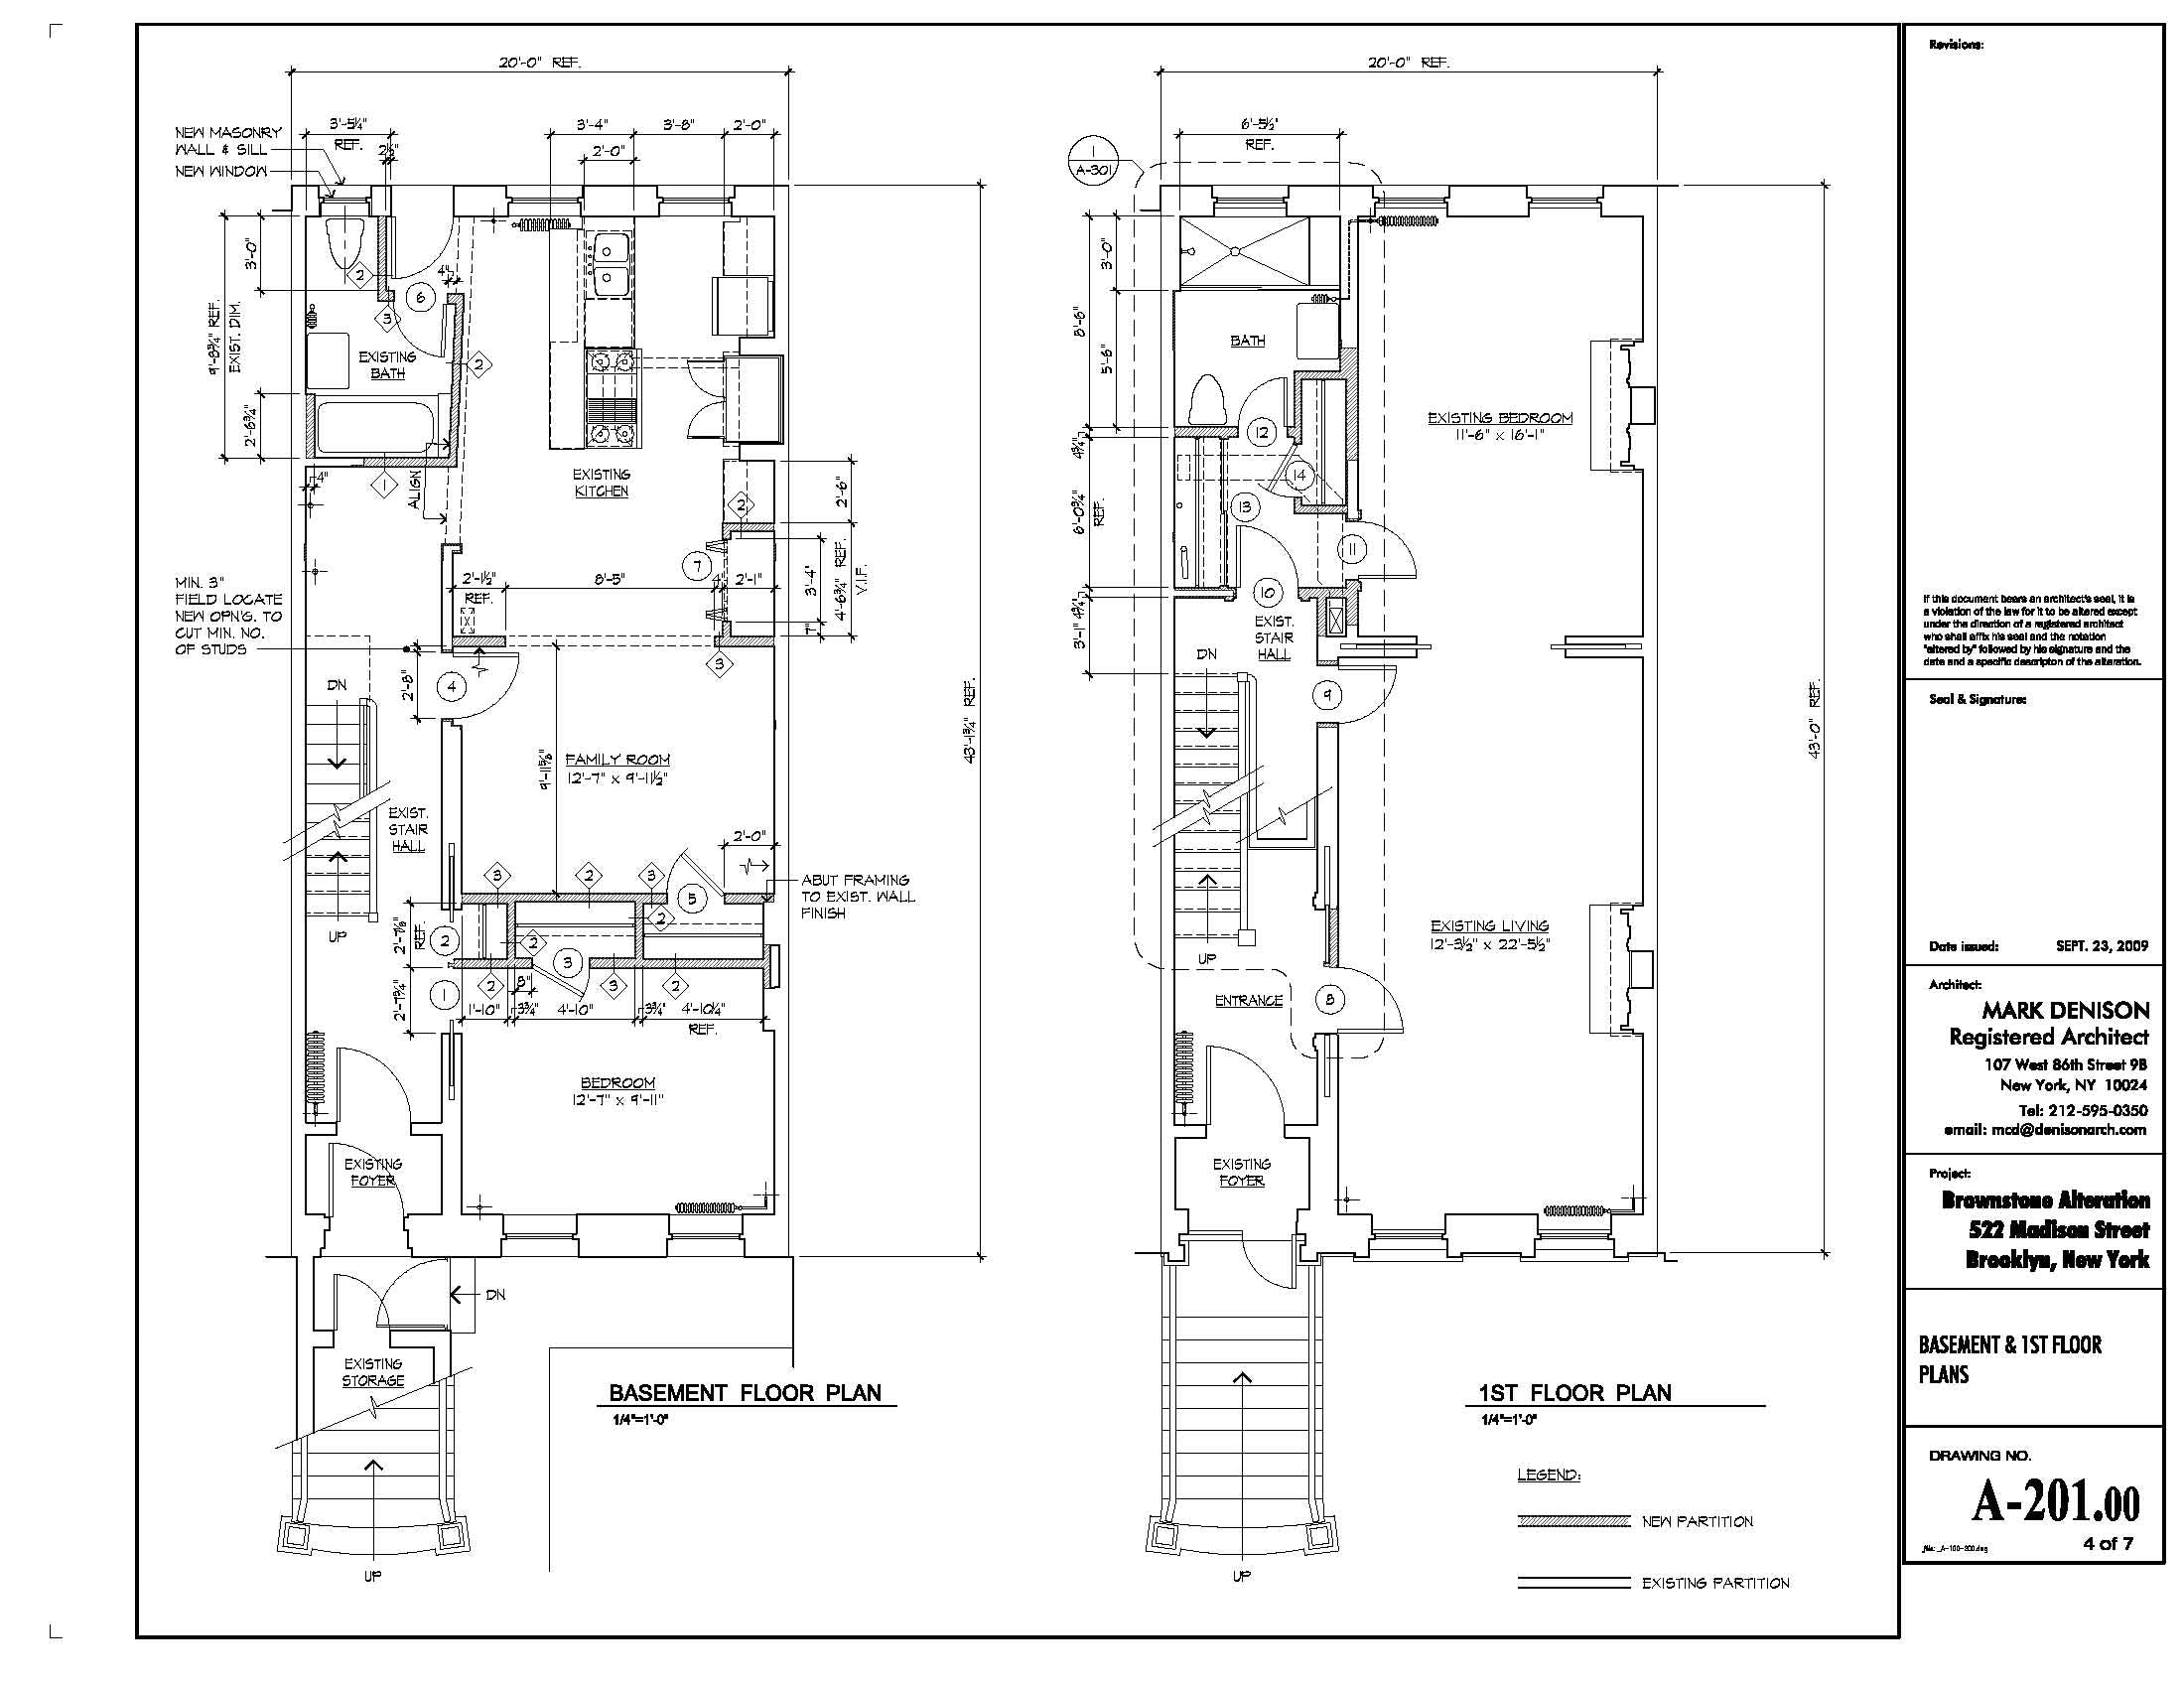 brownstone alteration mark denison archinect basement first floor plans